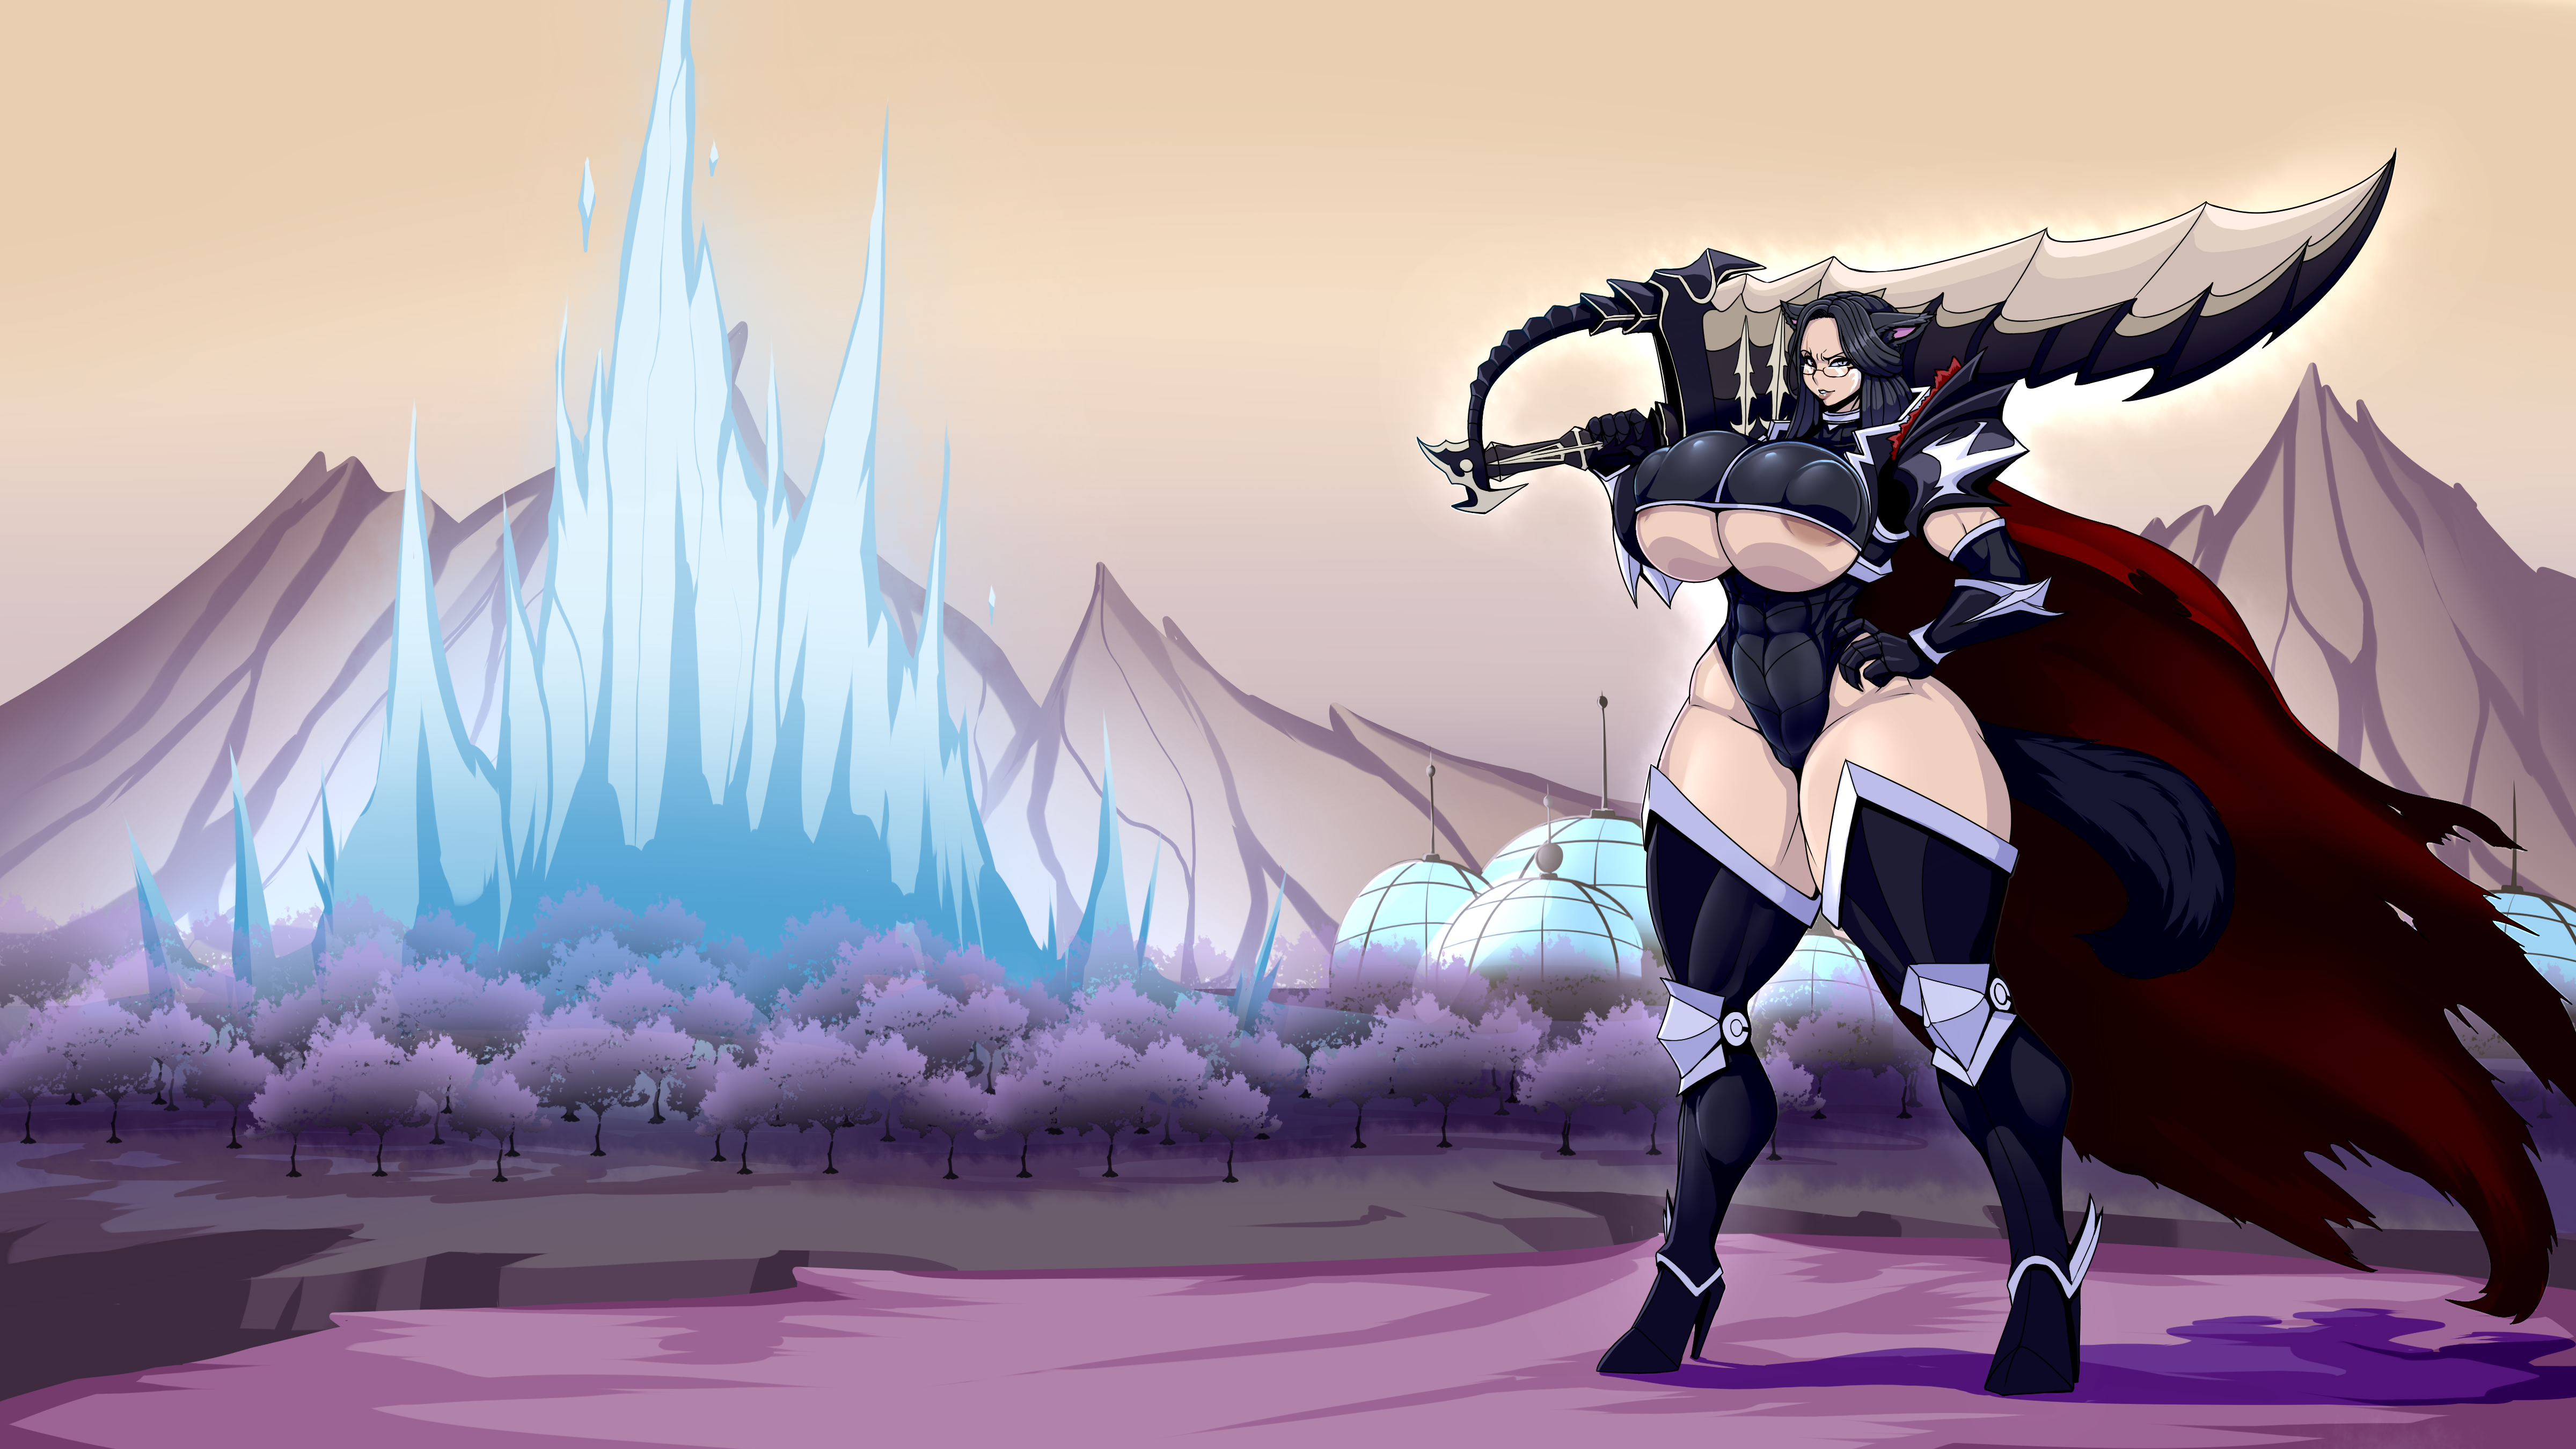 Rosalia Adventure Of Shadow By Ber00 On Newgrounds Check out their videos, sign up to chat, and join their community. rosalia adventure of shadow by ber00